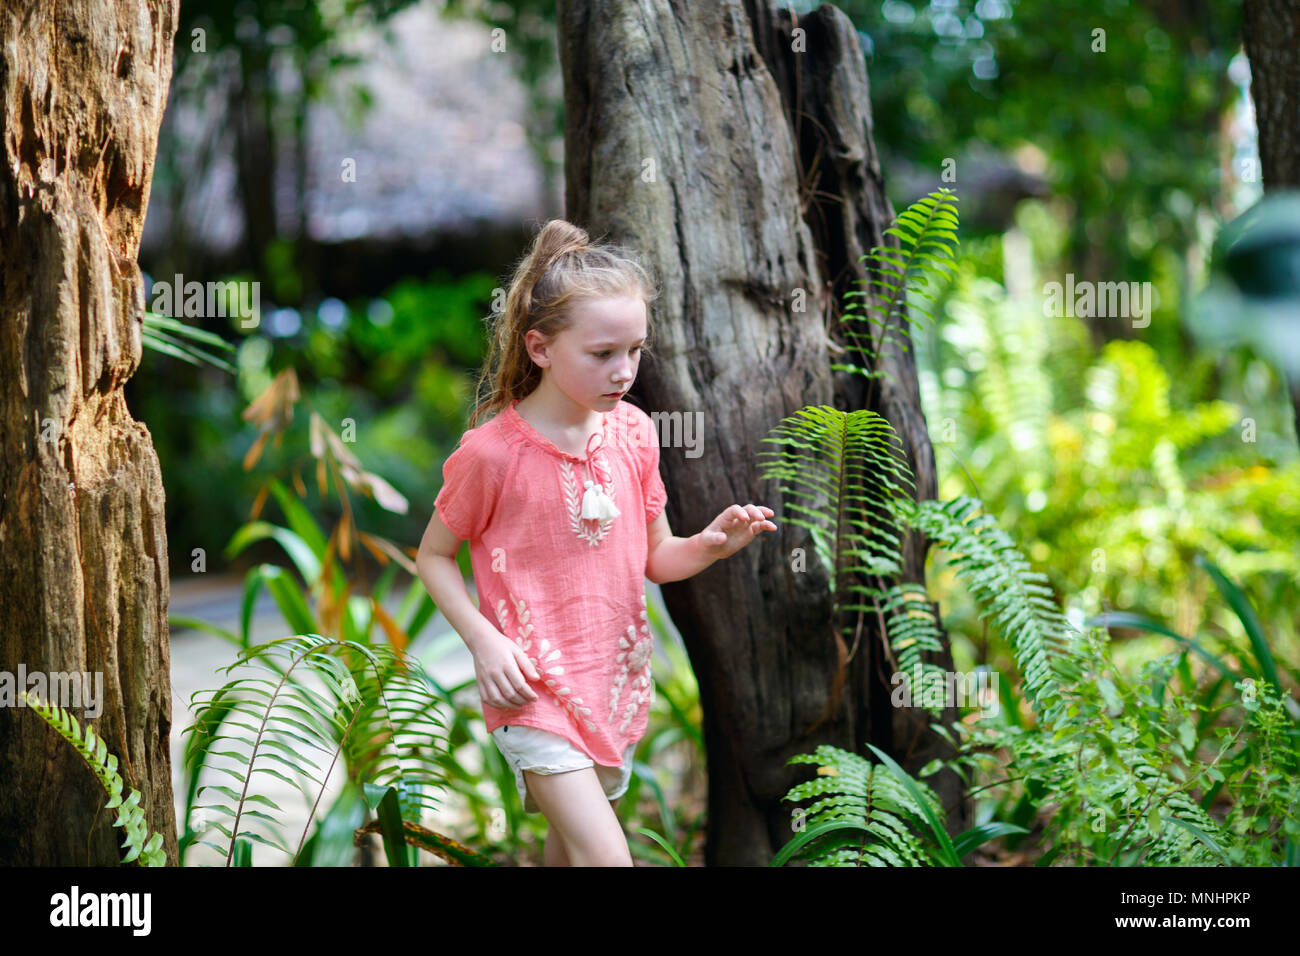 Casual portrait of little girl outdoors on summer day - Stock Image